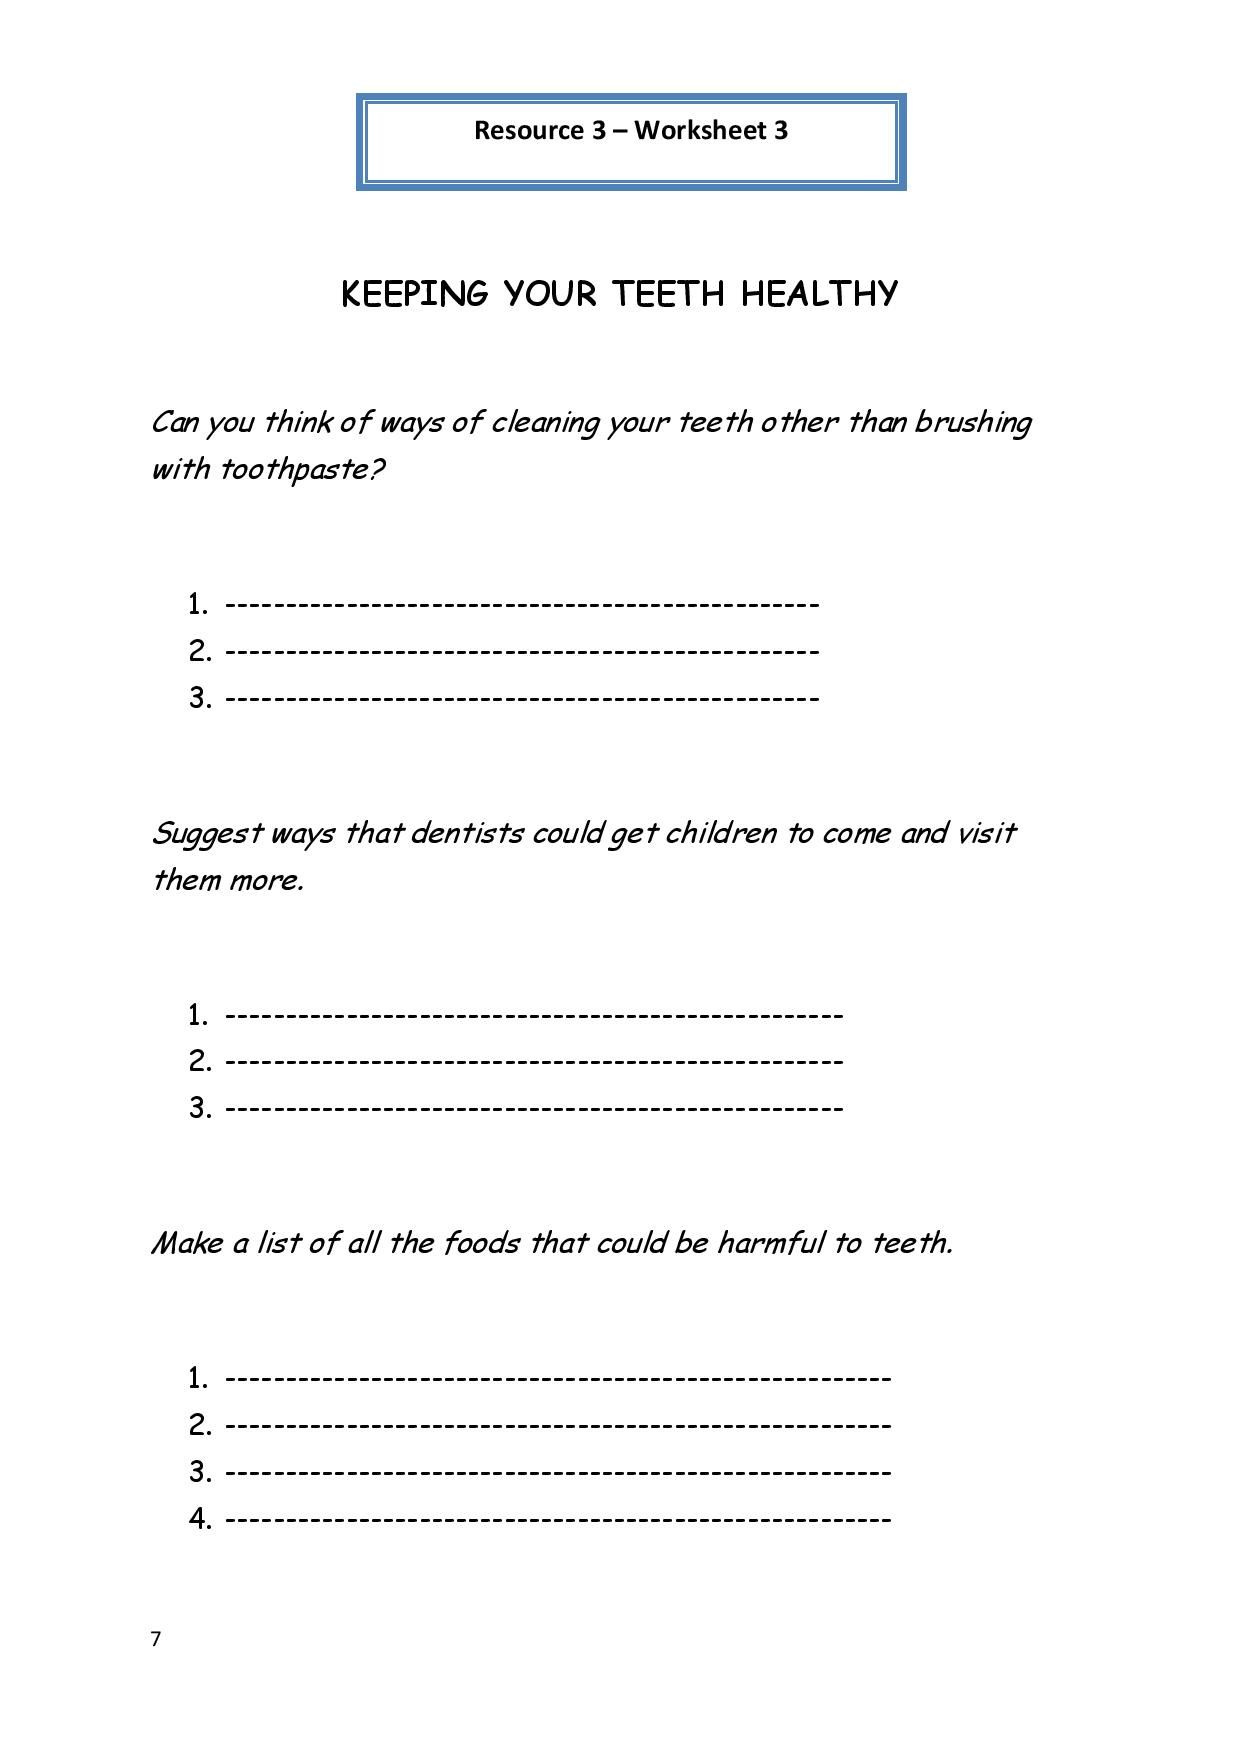 Personal Hygiene Worksheet 3 Keeping Your Teeth Healthy 1 240 1 754 Pixels